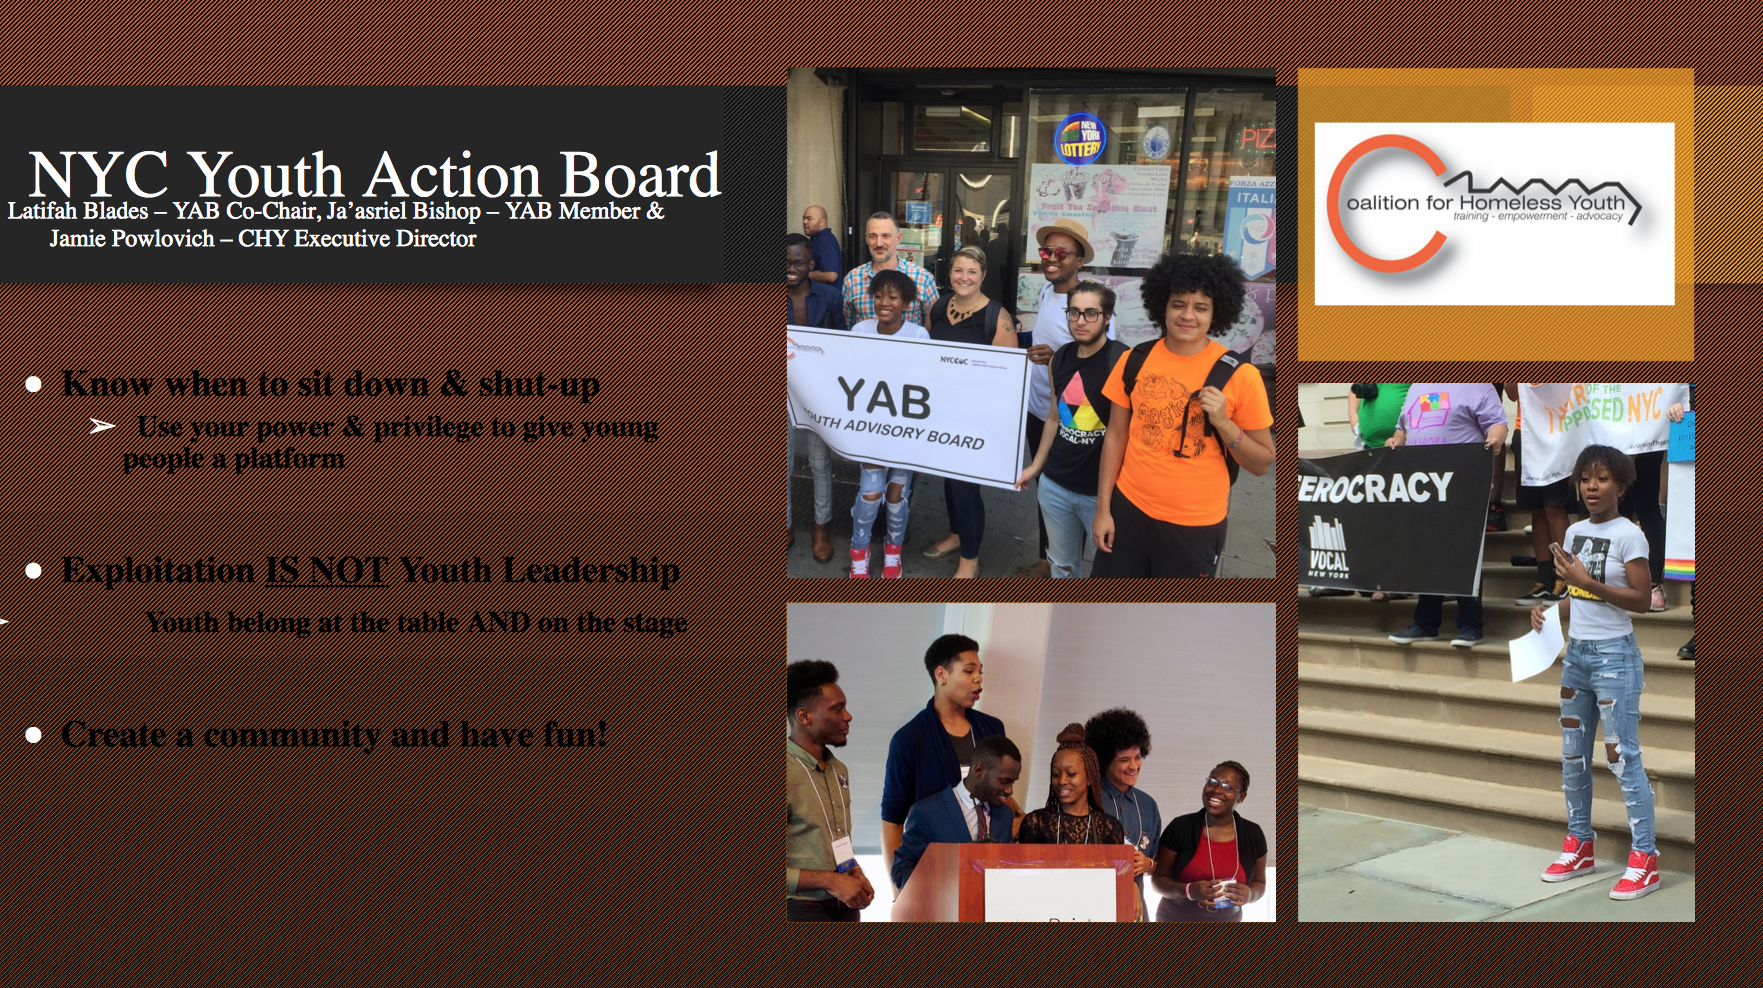 NYC youth action board.jpg